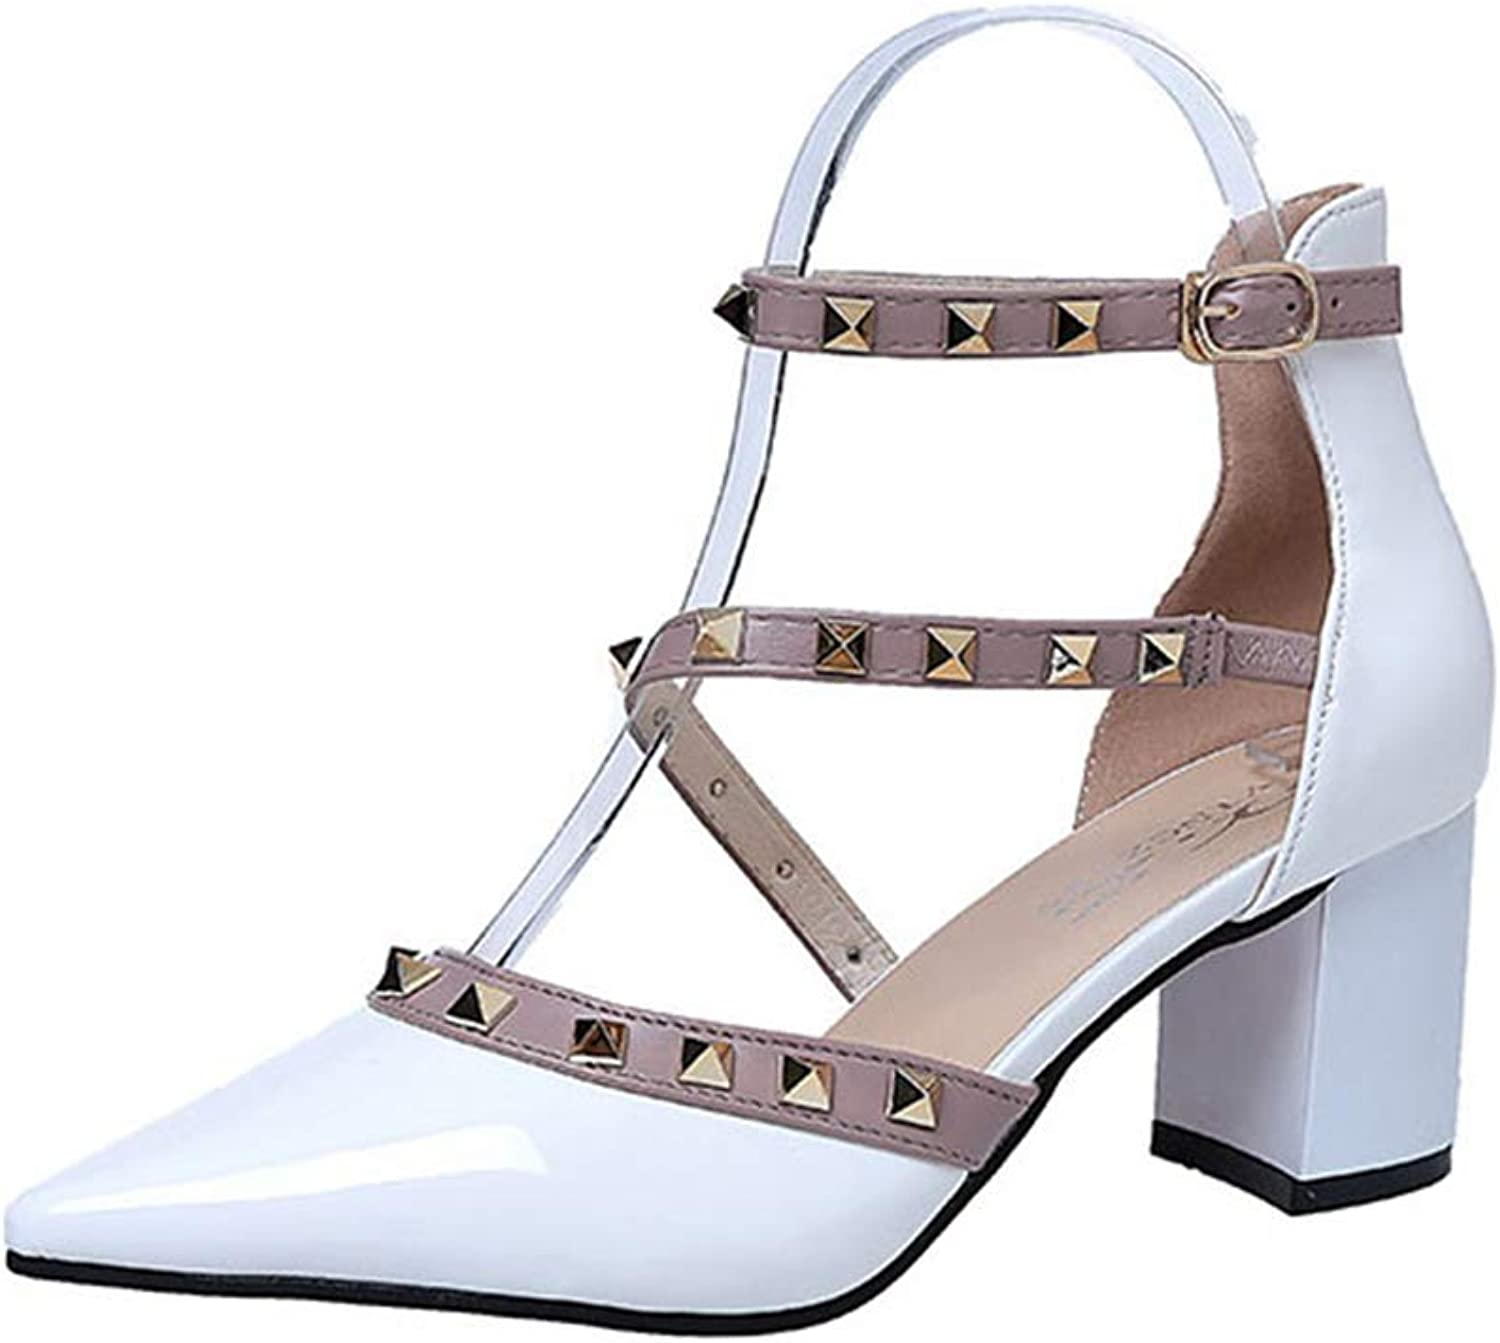 Kyle Walsh Pa Women's Pumps Sandals Ankle Strap Block Heel Sexy Pointed Toe Hasp Rivet Female High-Heeled shoes